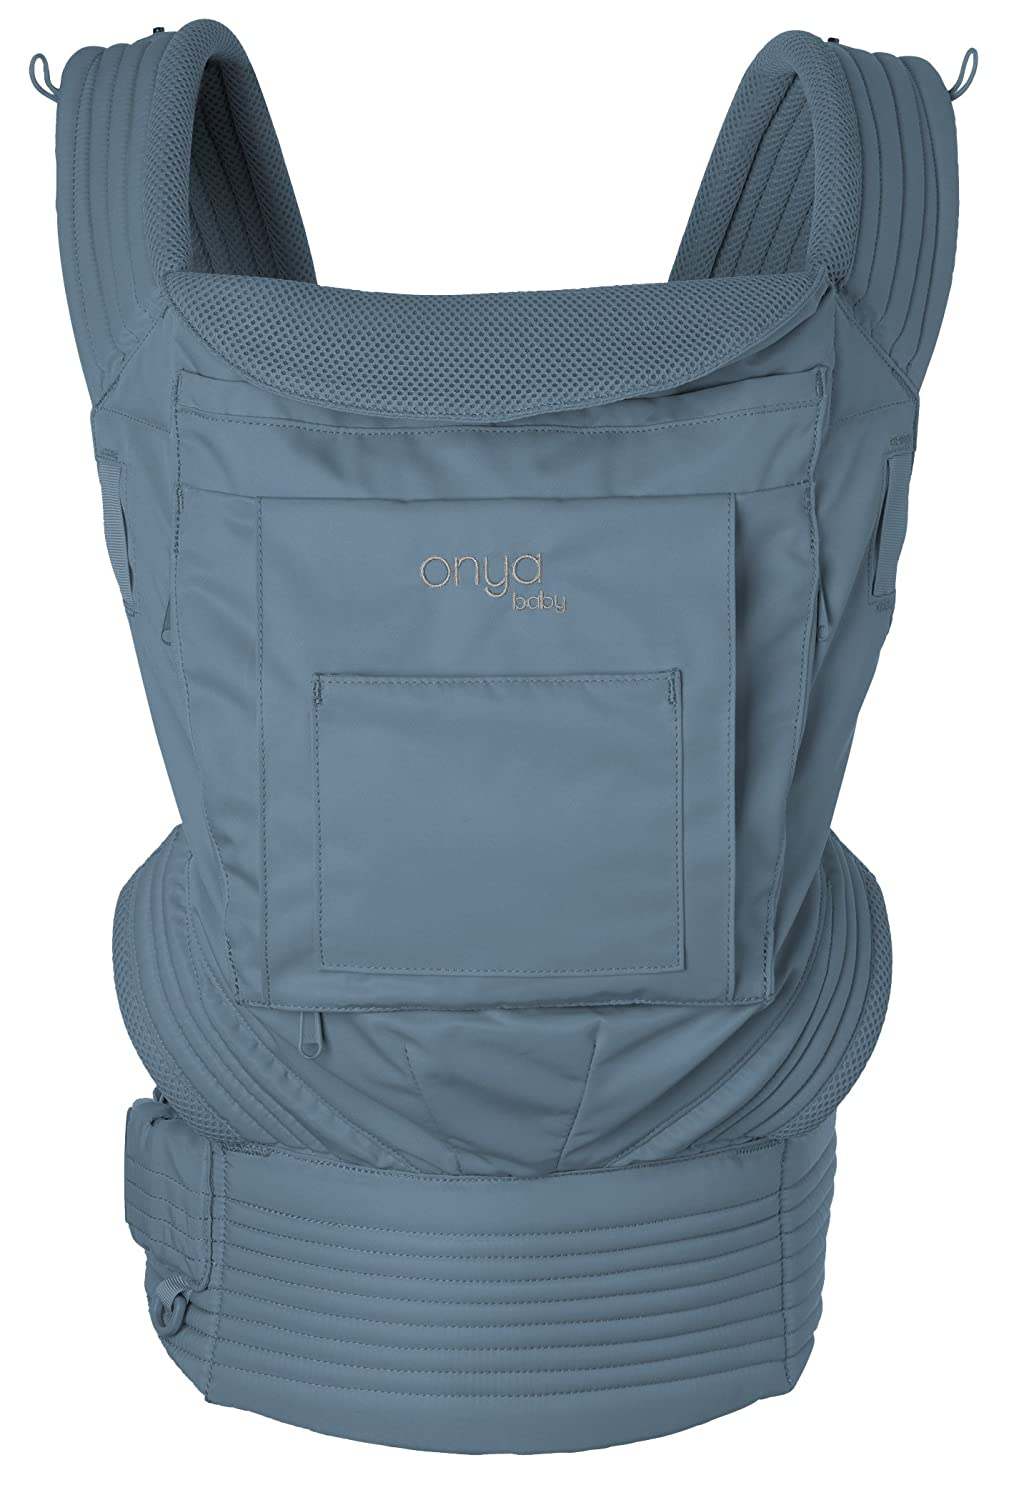 Onya Baby NexStep Ergonomic Front and Back Infant to Toddler Carrier – Neptune